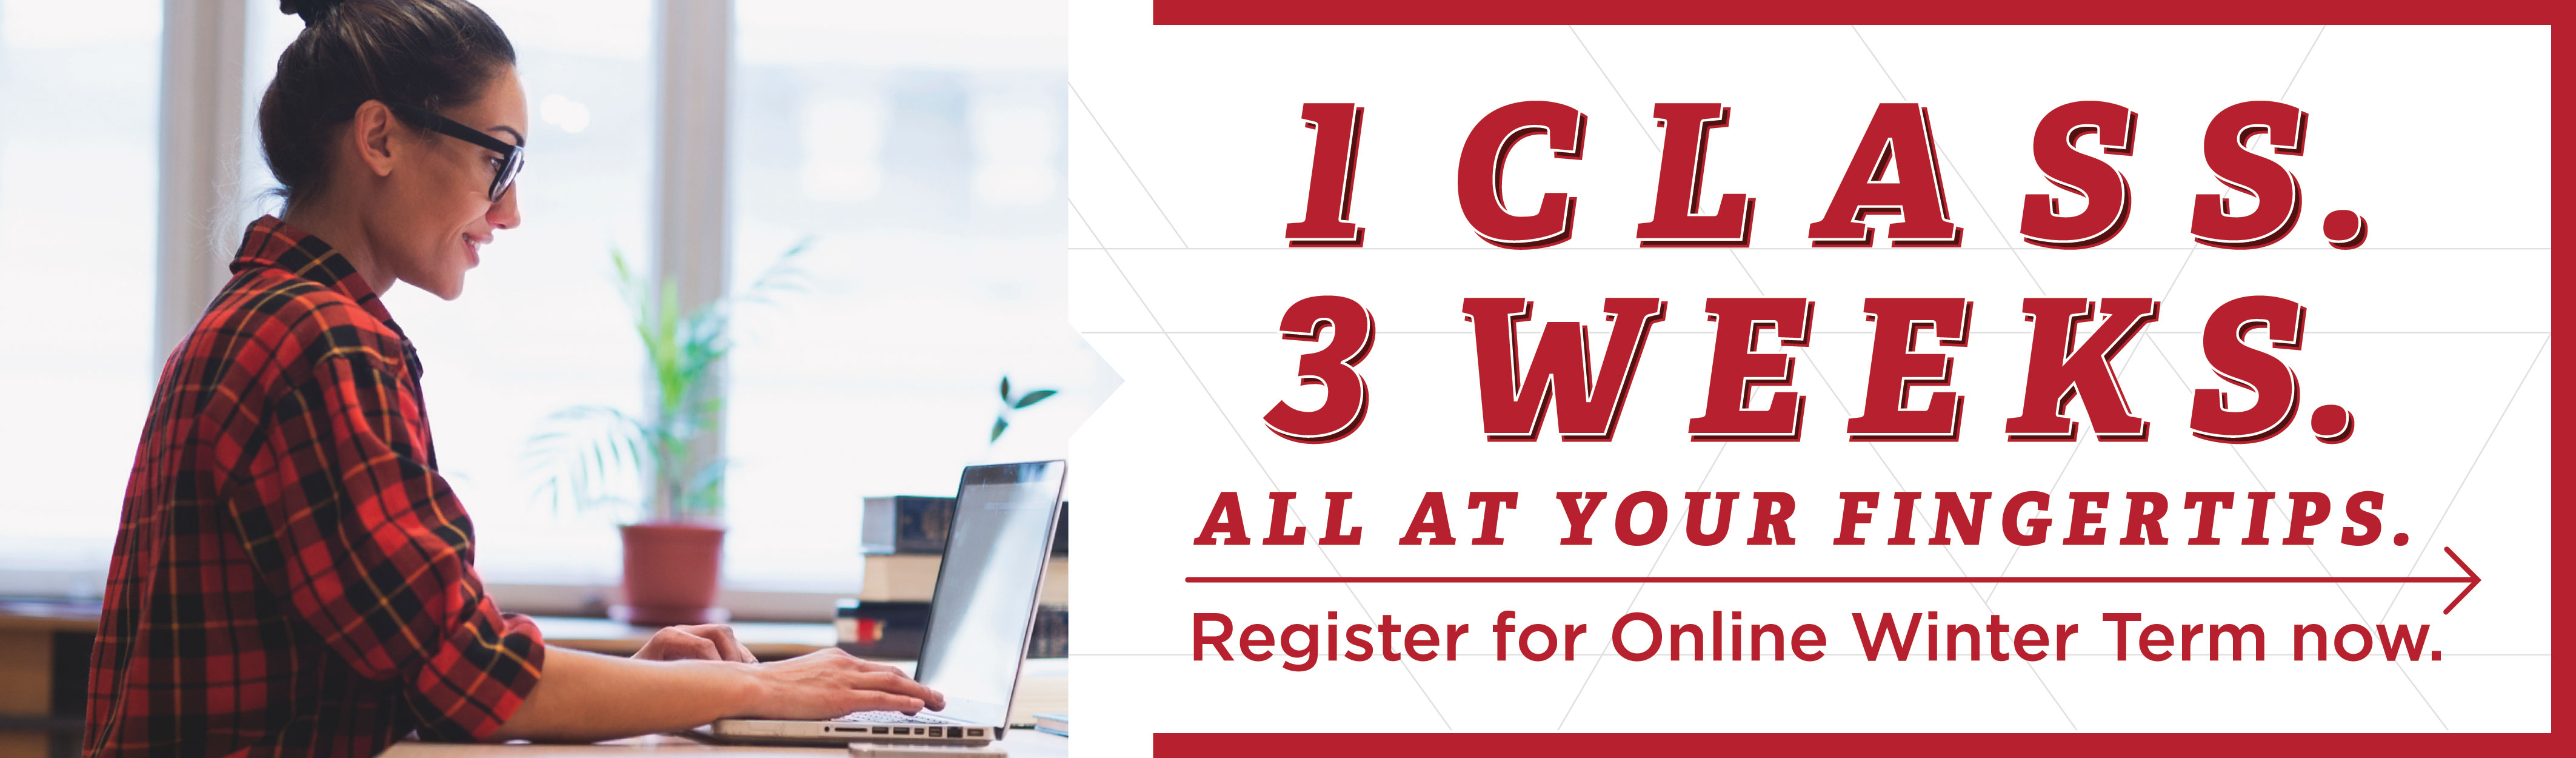 1 class. 3 weeks. All at your fingertips.  Register for Online Winter Term now.